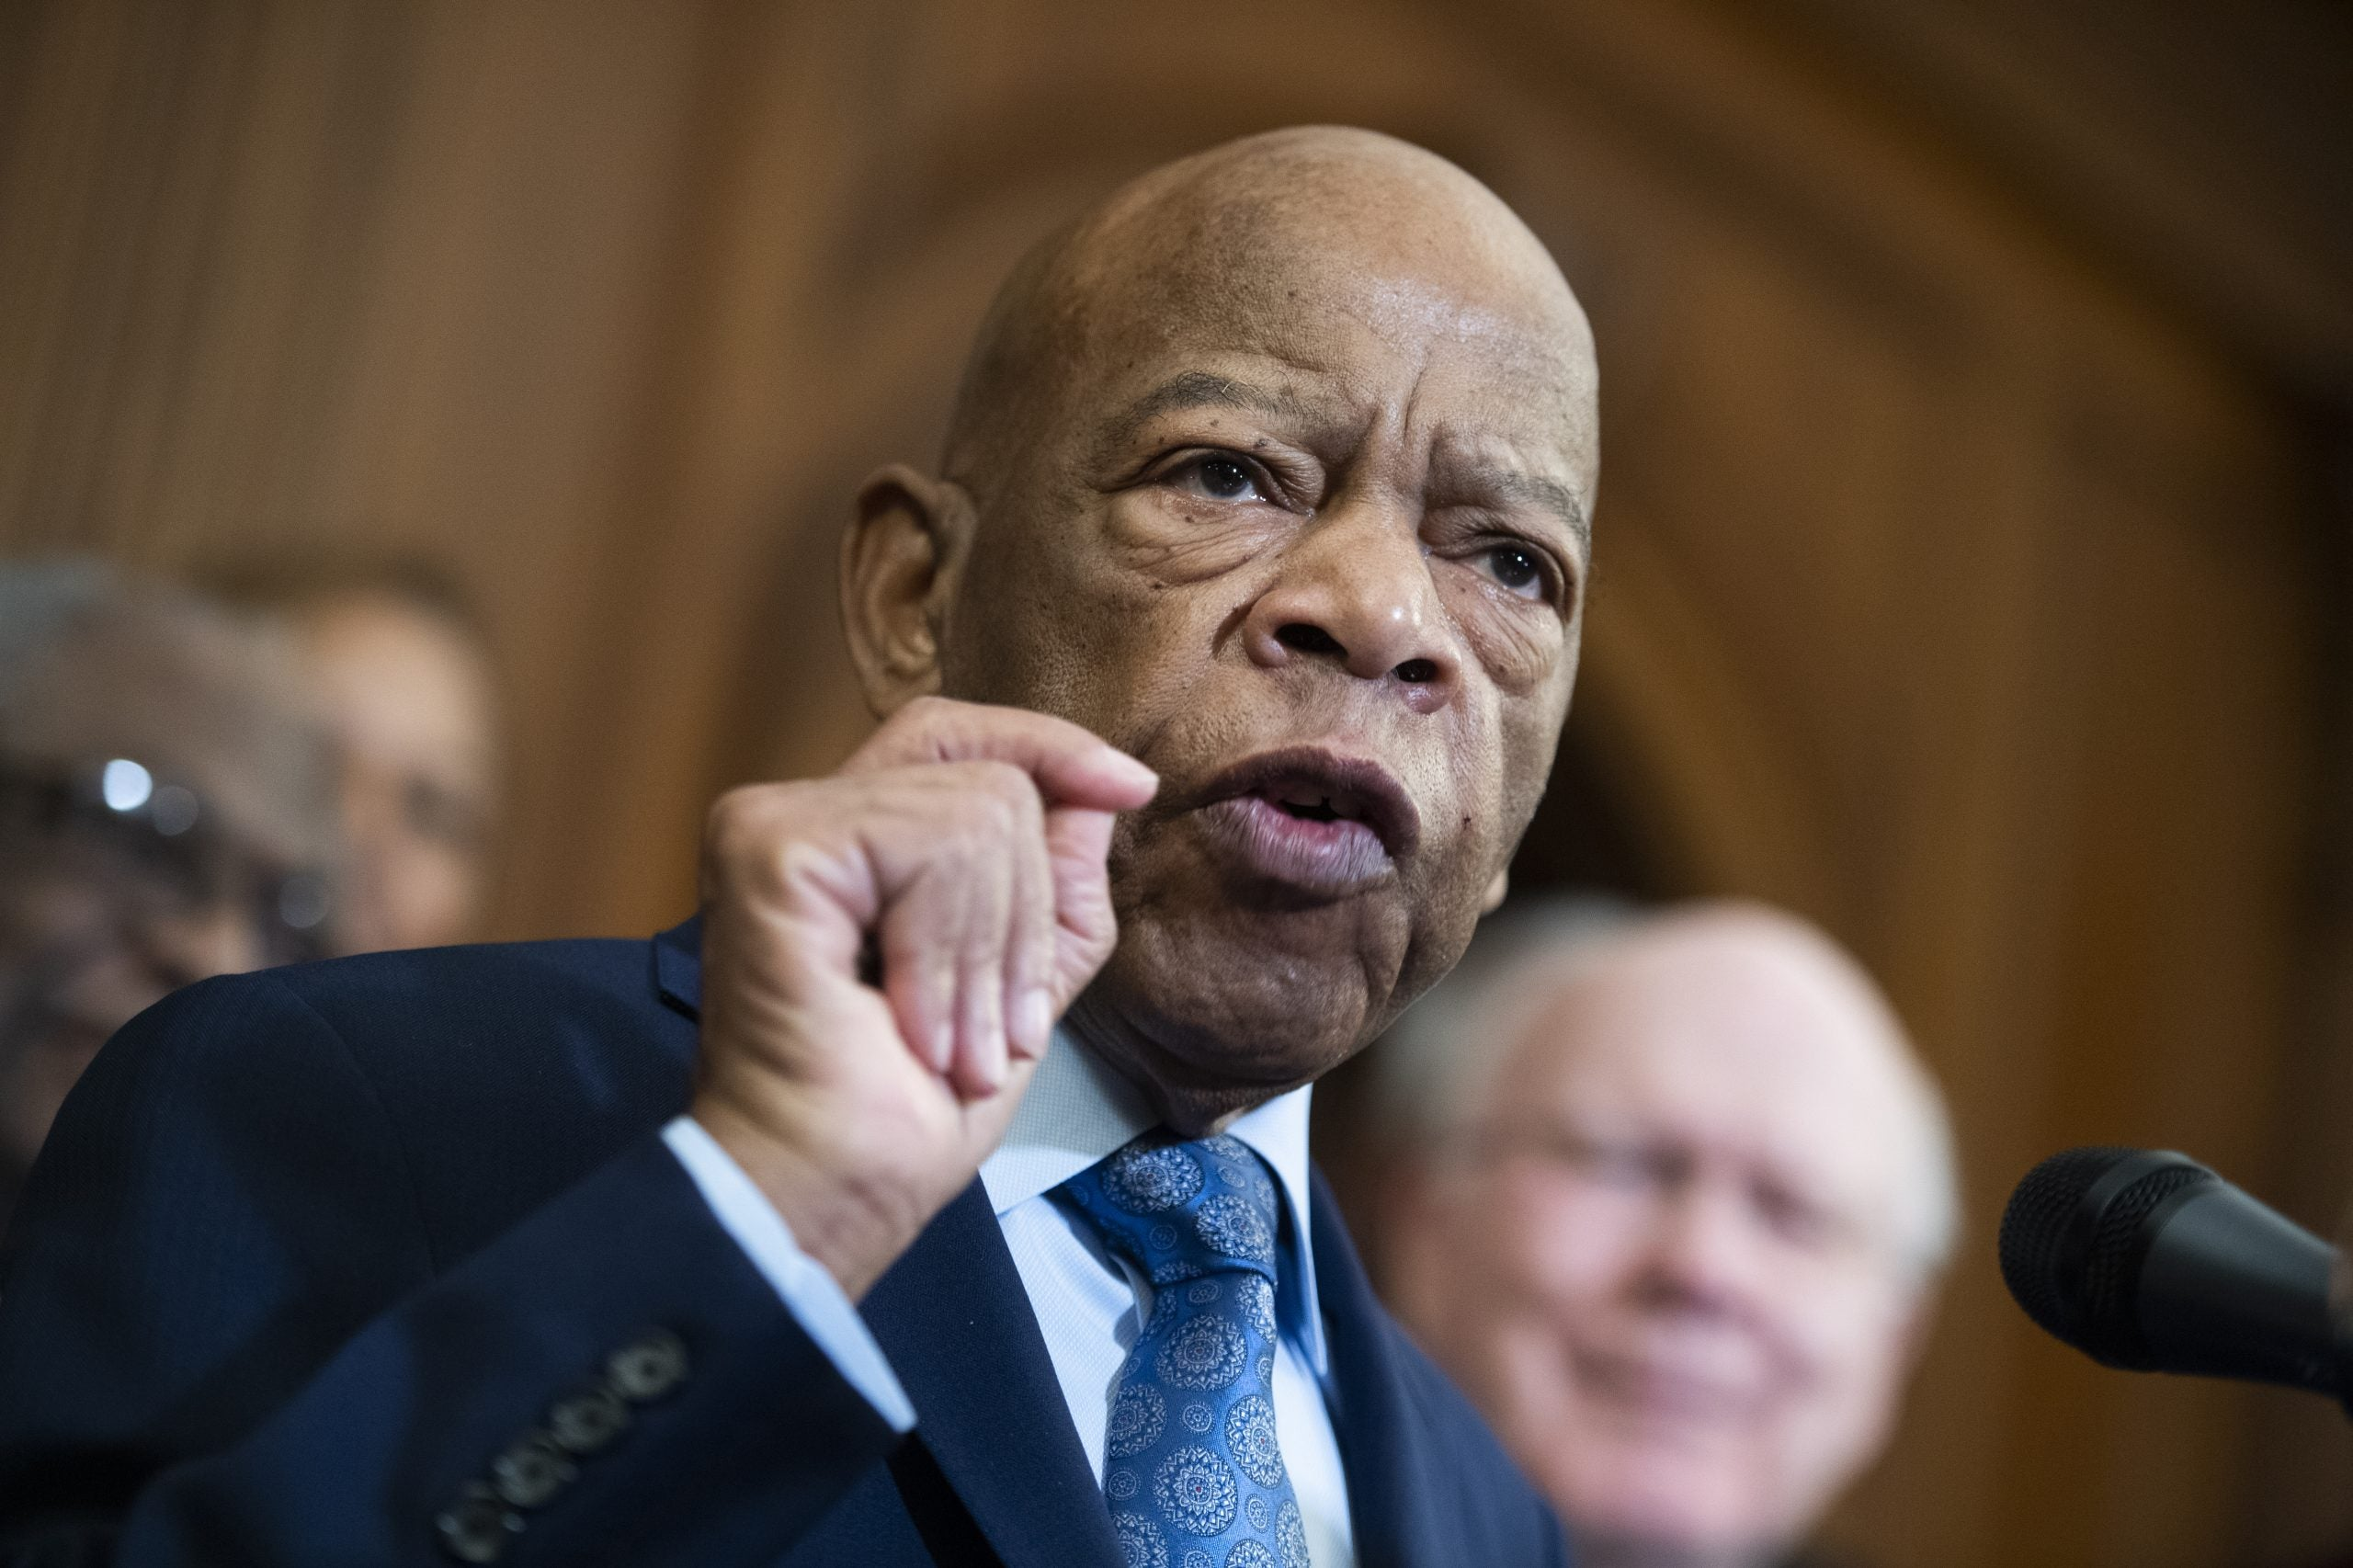 John Lewis calls for justice in the impeachment trial of Donald Trump